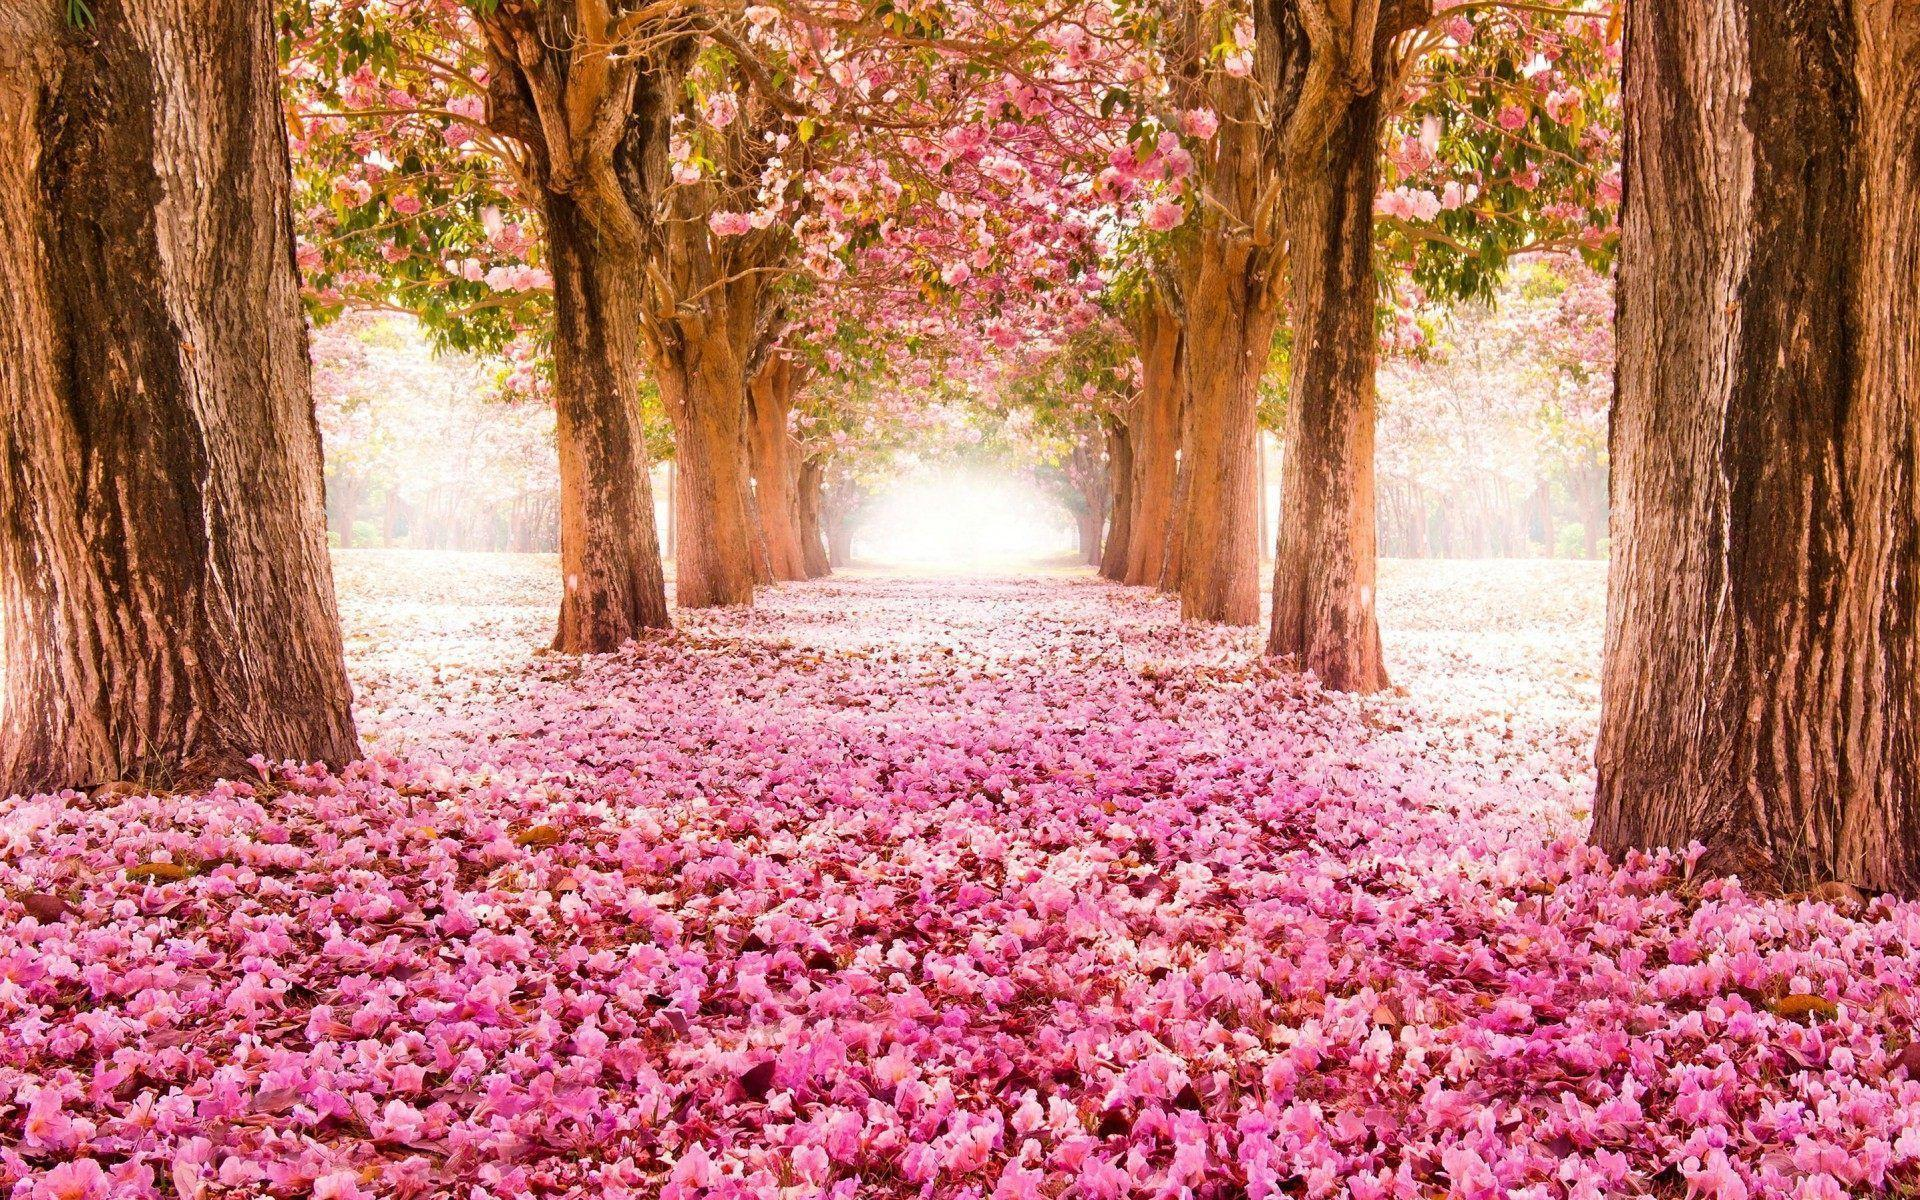 Spring flowers wallpapers HD | HD Wallpapers, Backgrounds, Images ...